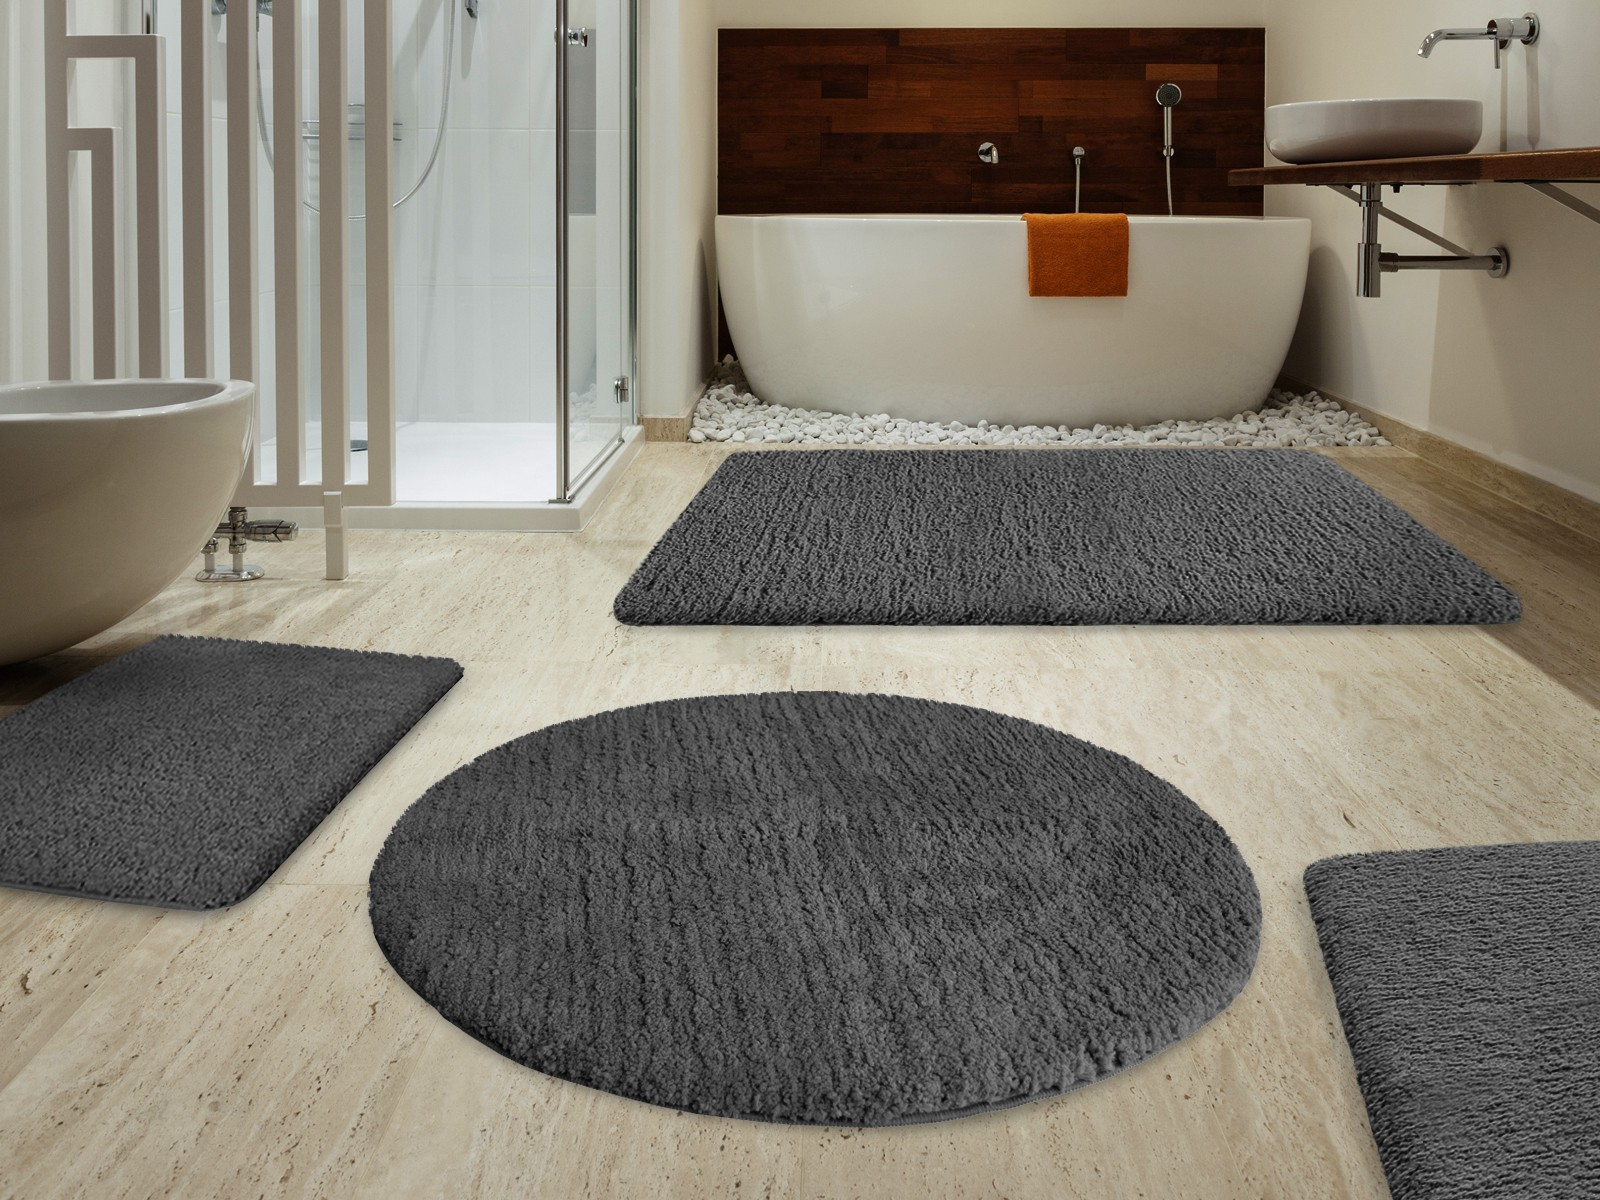 stormy black bath mat sets for floor mats